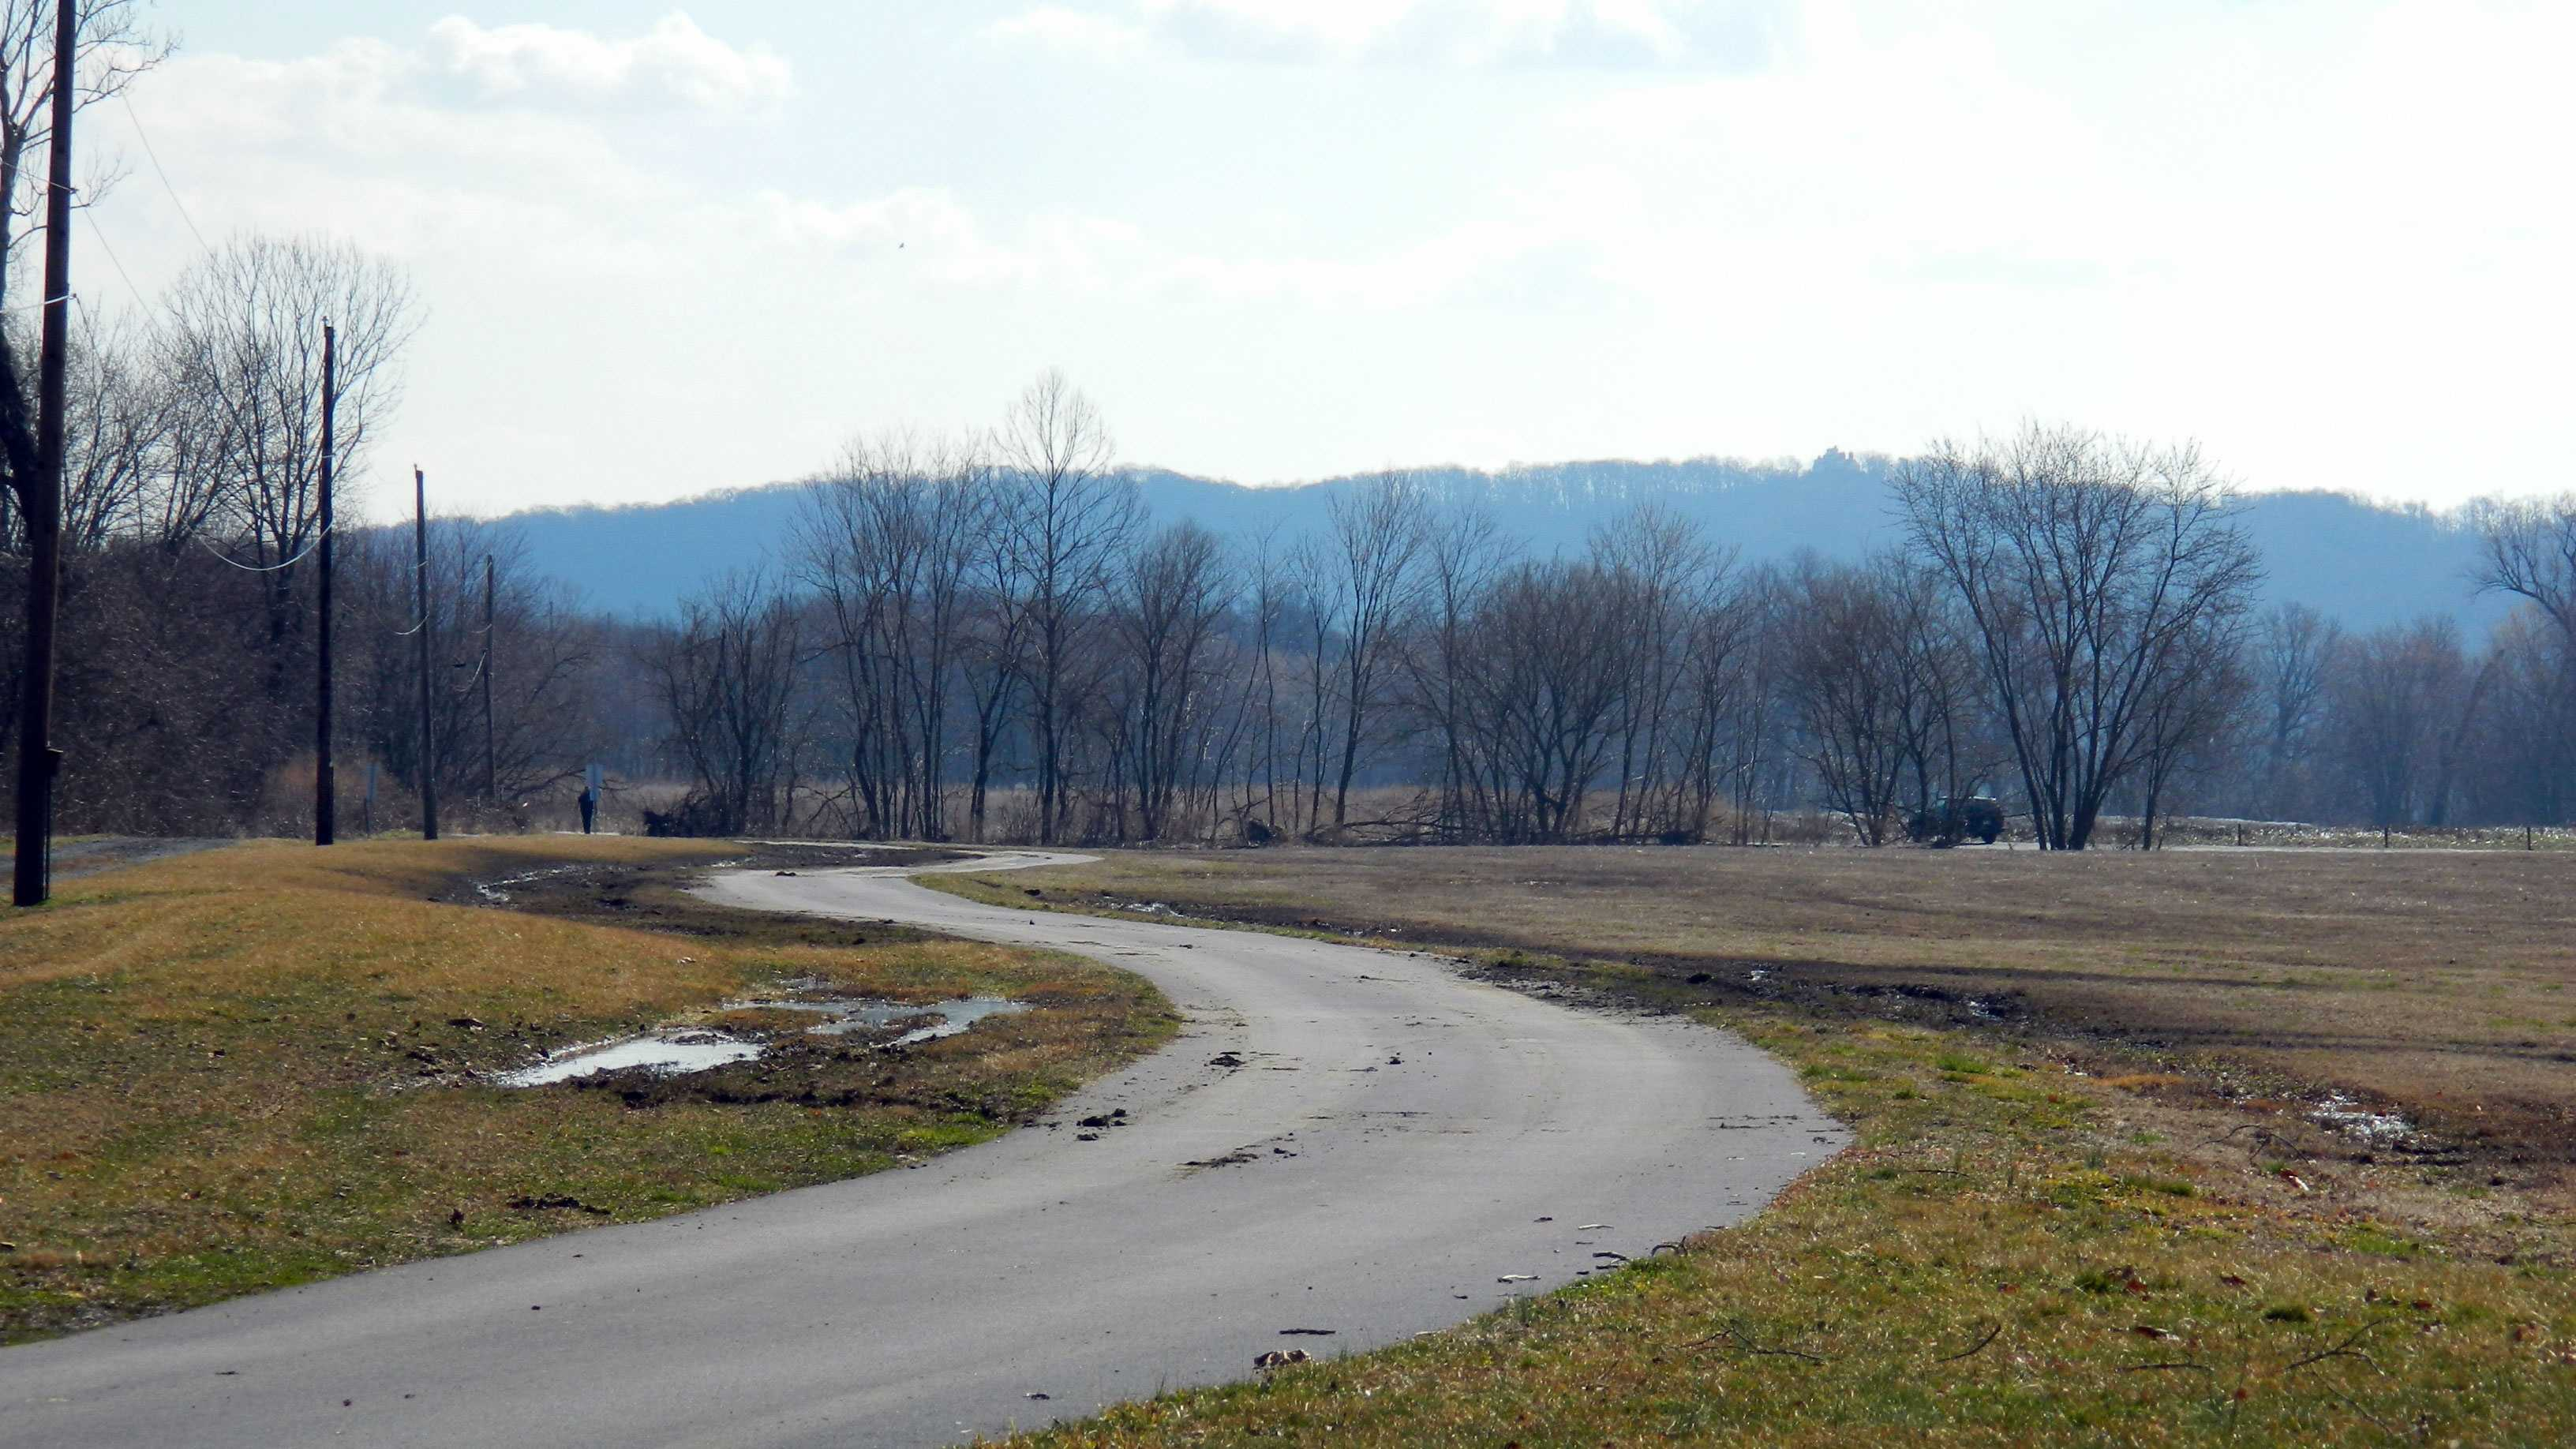 They drove their vehicles on the grass, causing extensive ruts and deep tire tracks, Susquehanna Regional Police said.